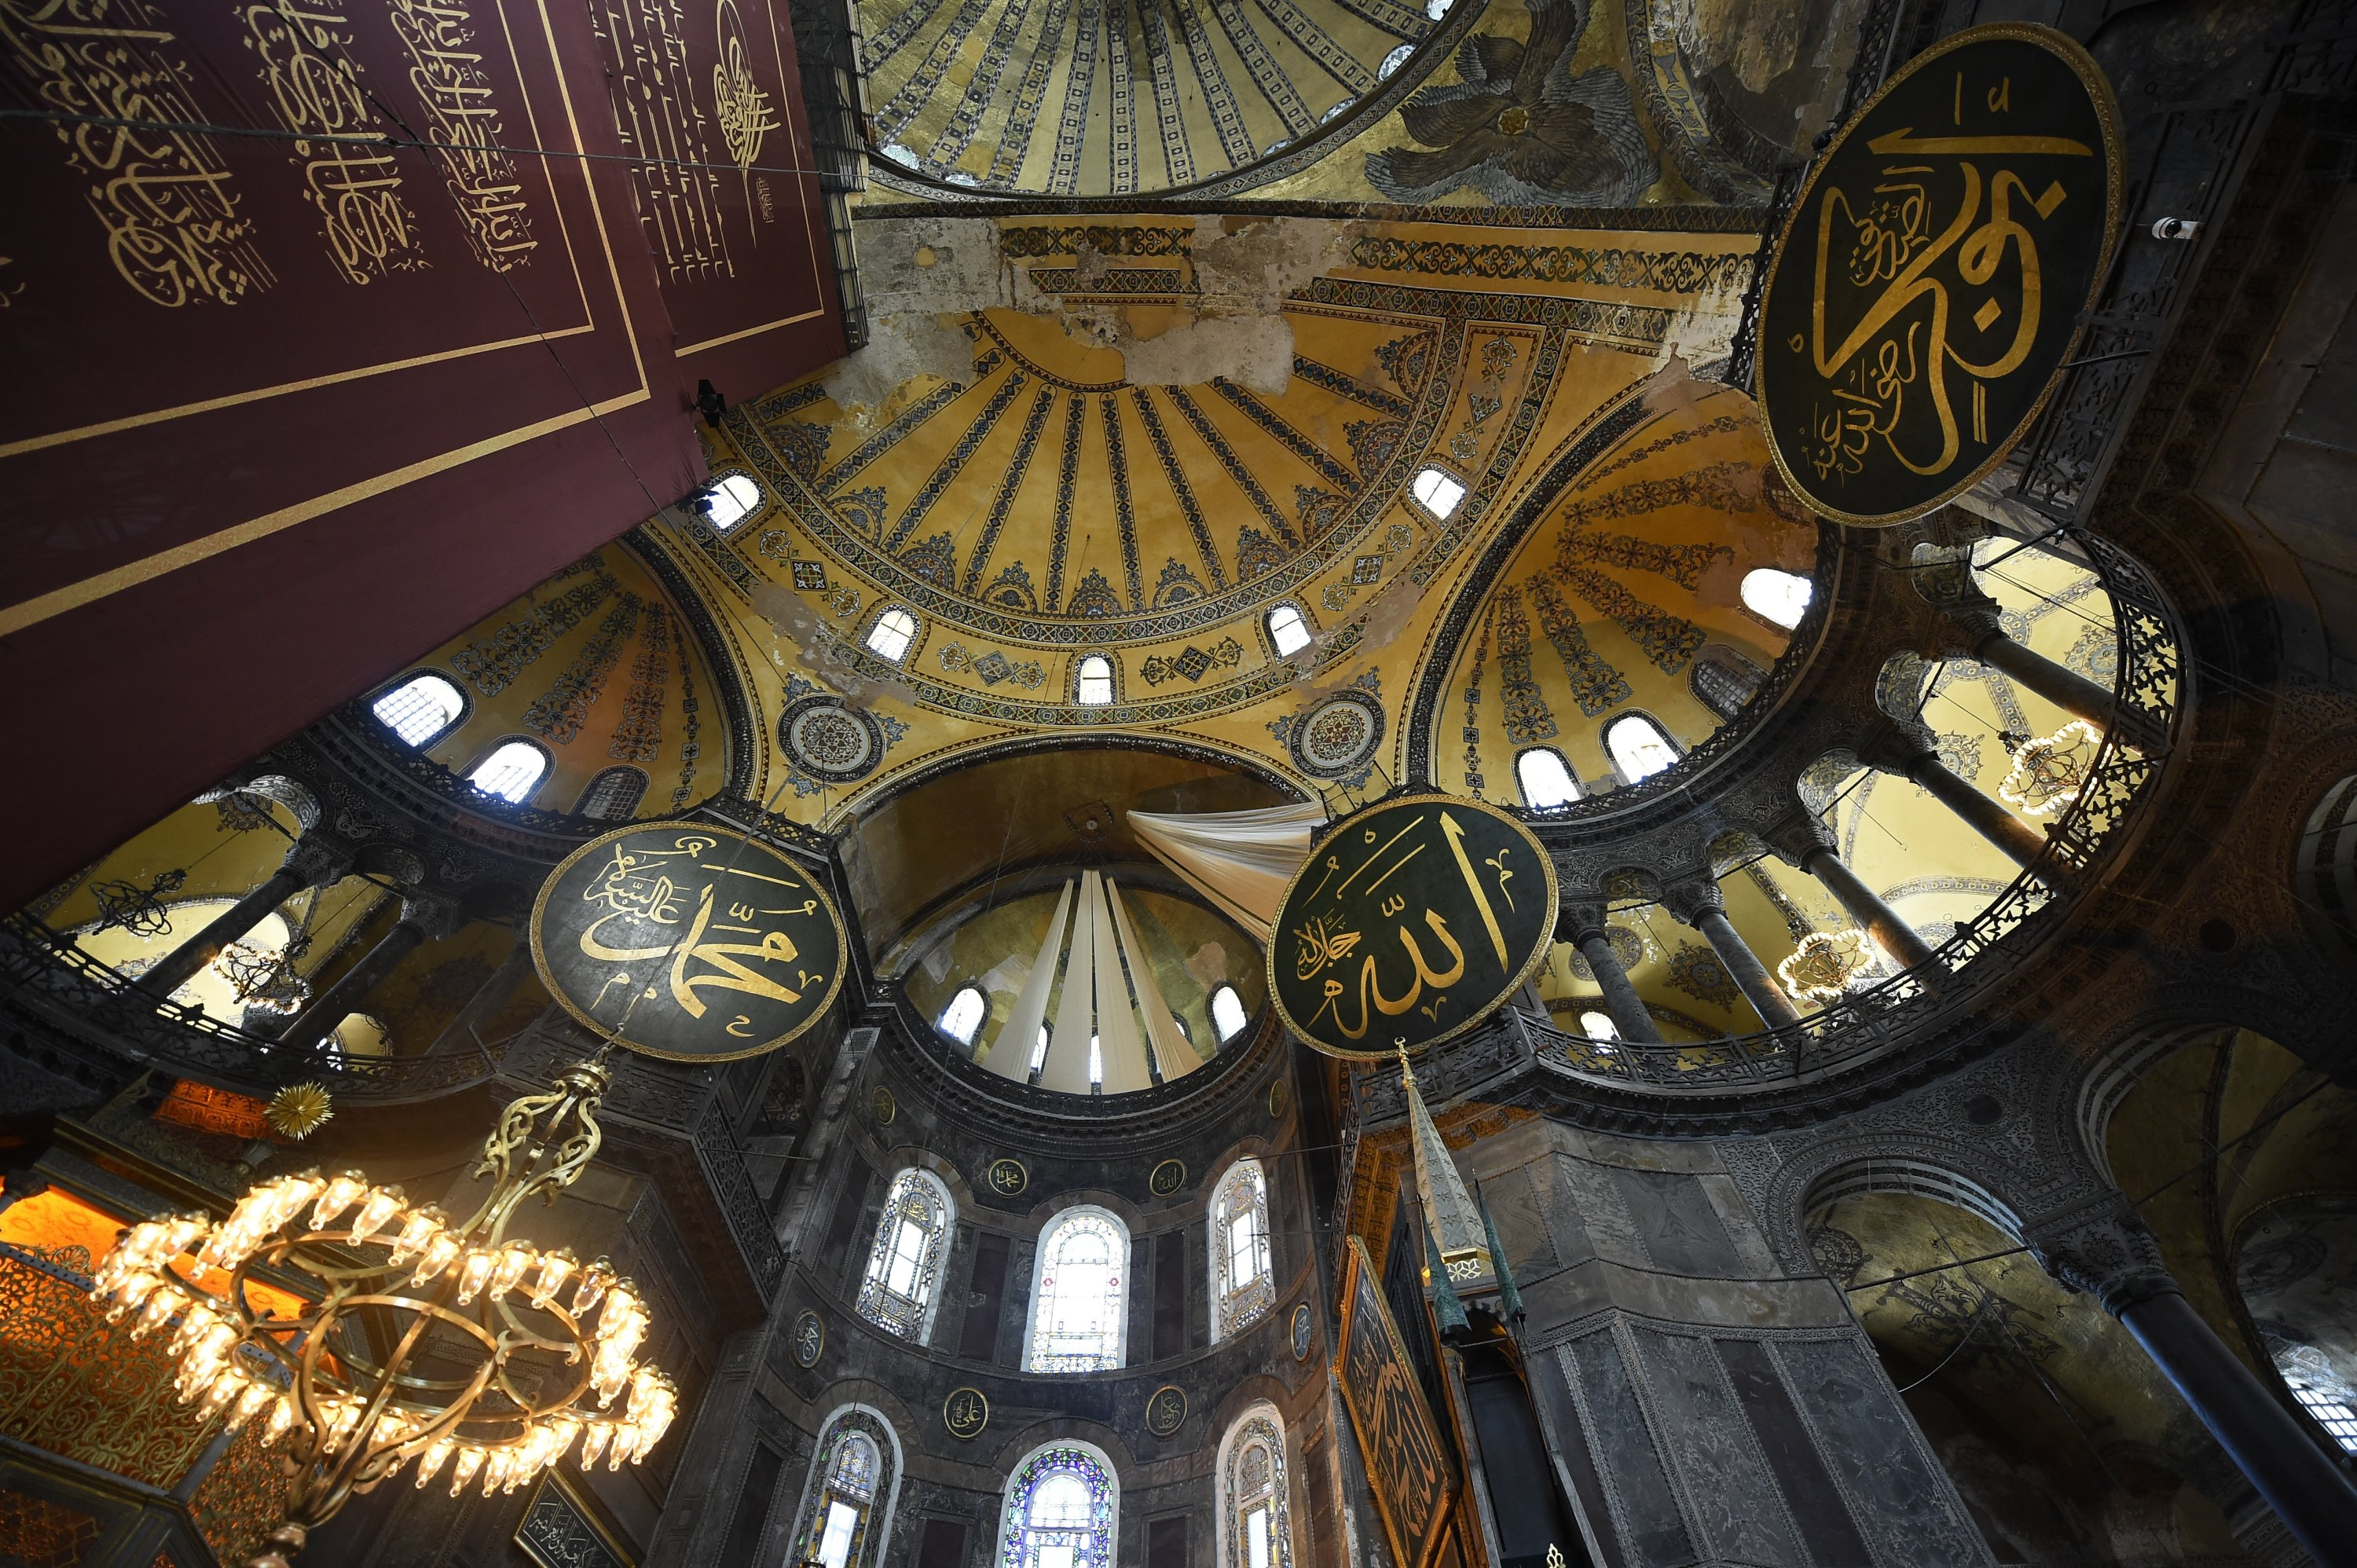 A view of inside the Hagia Sophia, which will be introduced through virtual tours as part of the festival program. (AP PHOTO)